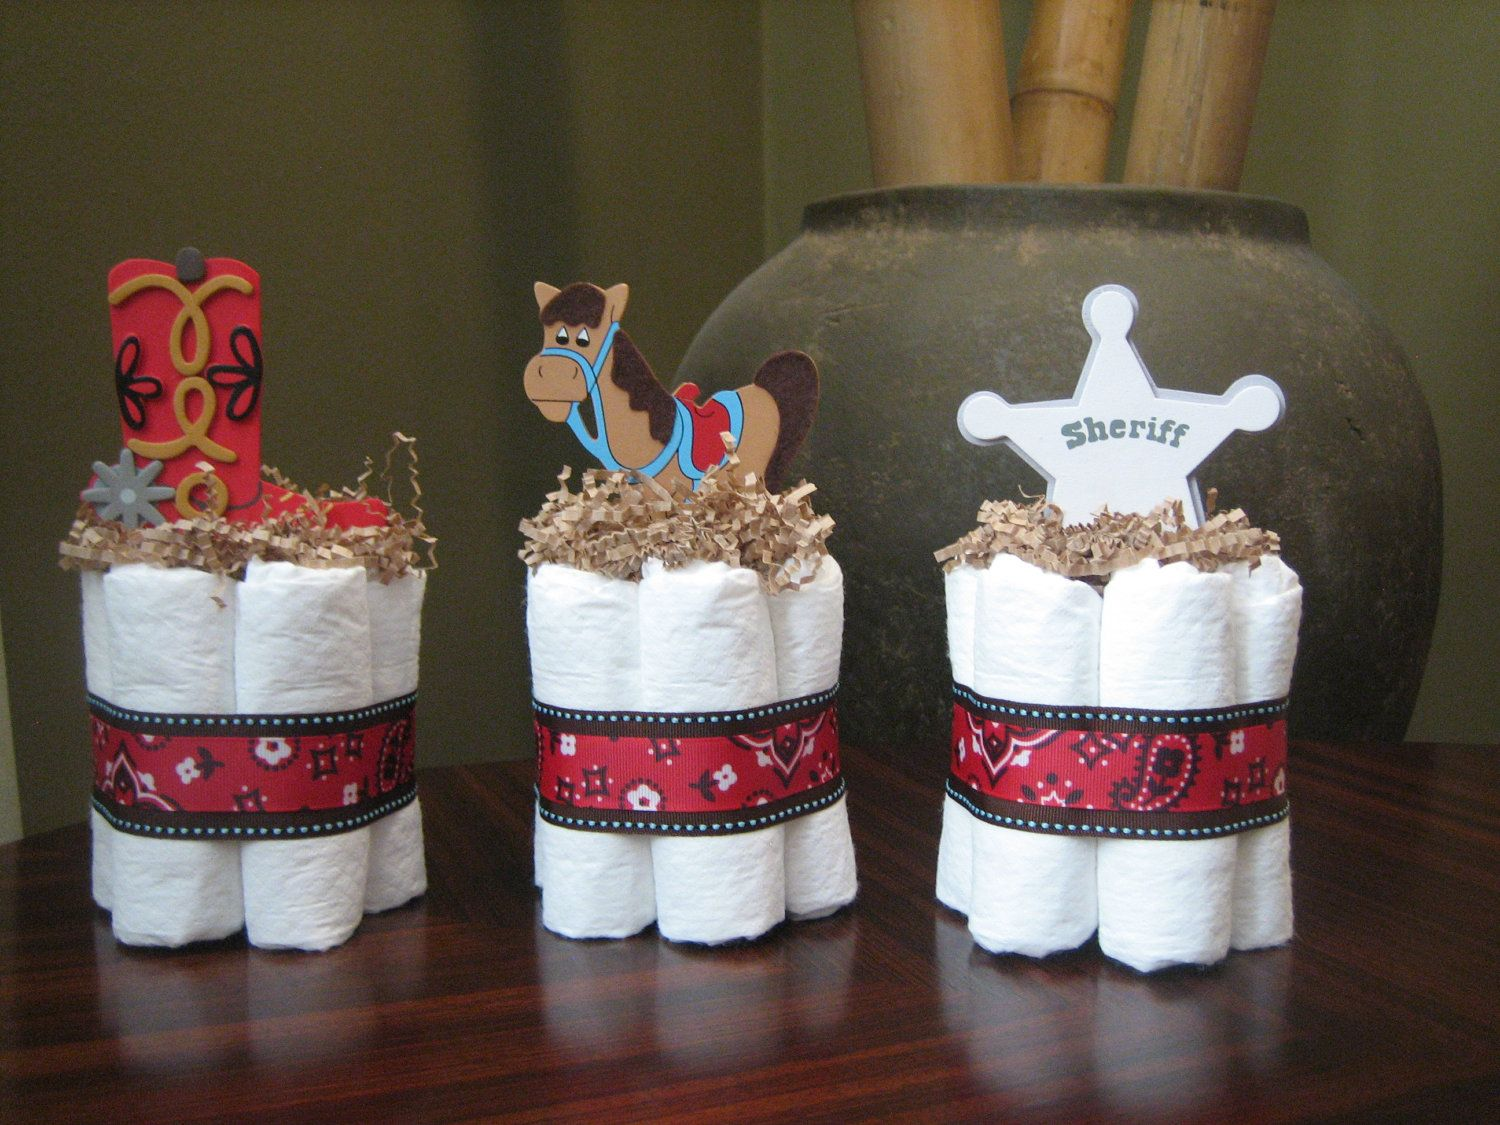 Superior THREE LITTLE COWBOY Mini Diaper Cakes For Baby Shower Decoration Or New Baby  Gift. $25.00